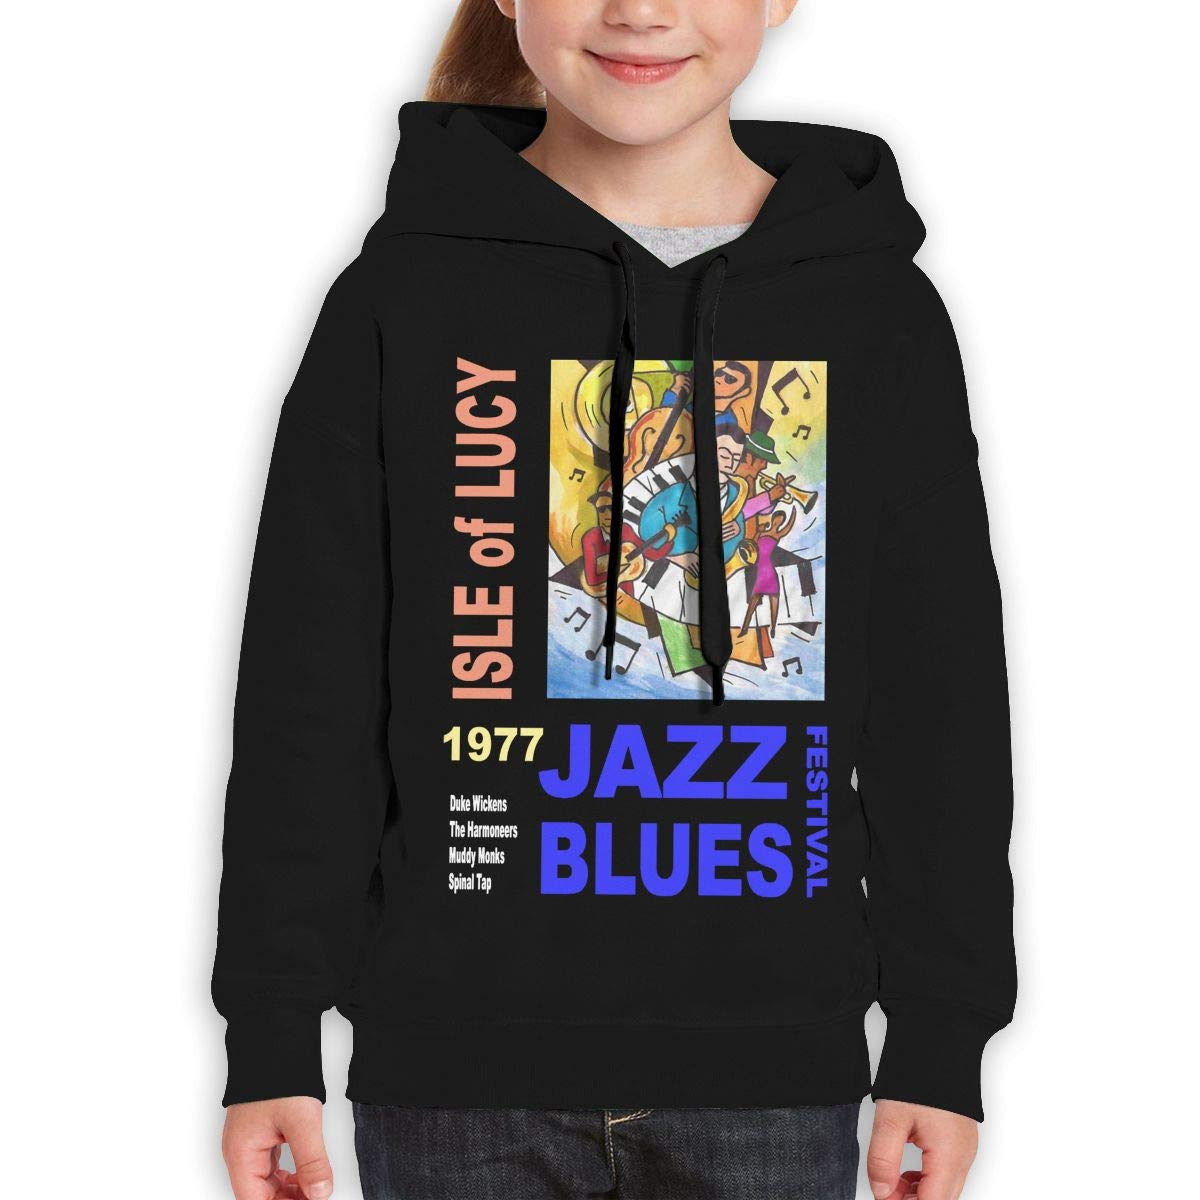 Guiping ISLE of Lucy Jazz Festival Teen Hooded Sweate Sweatshirt Black